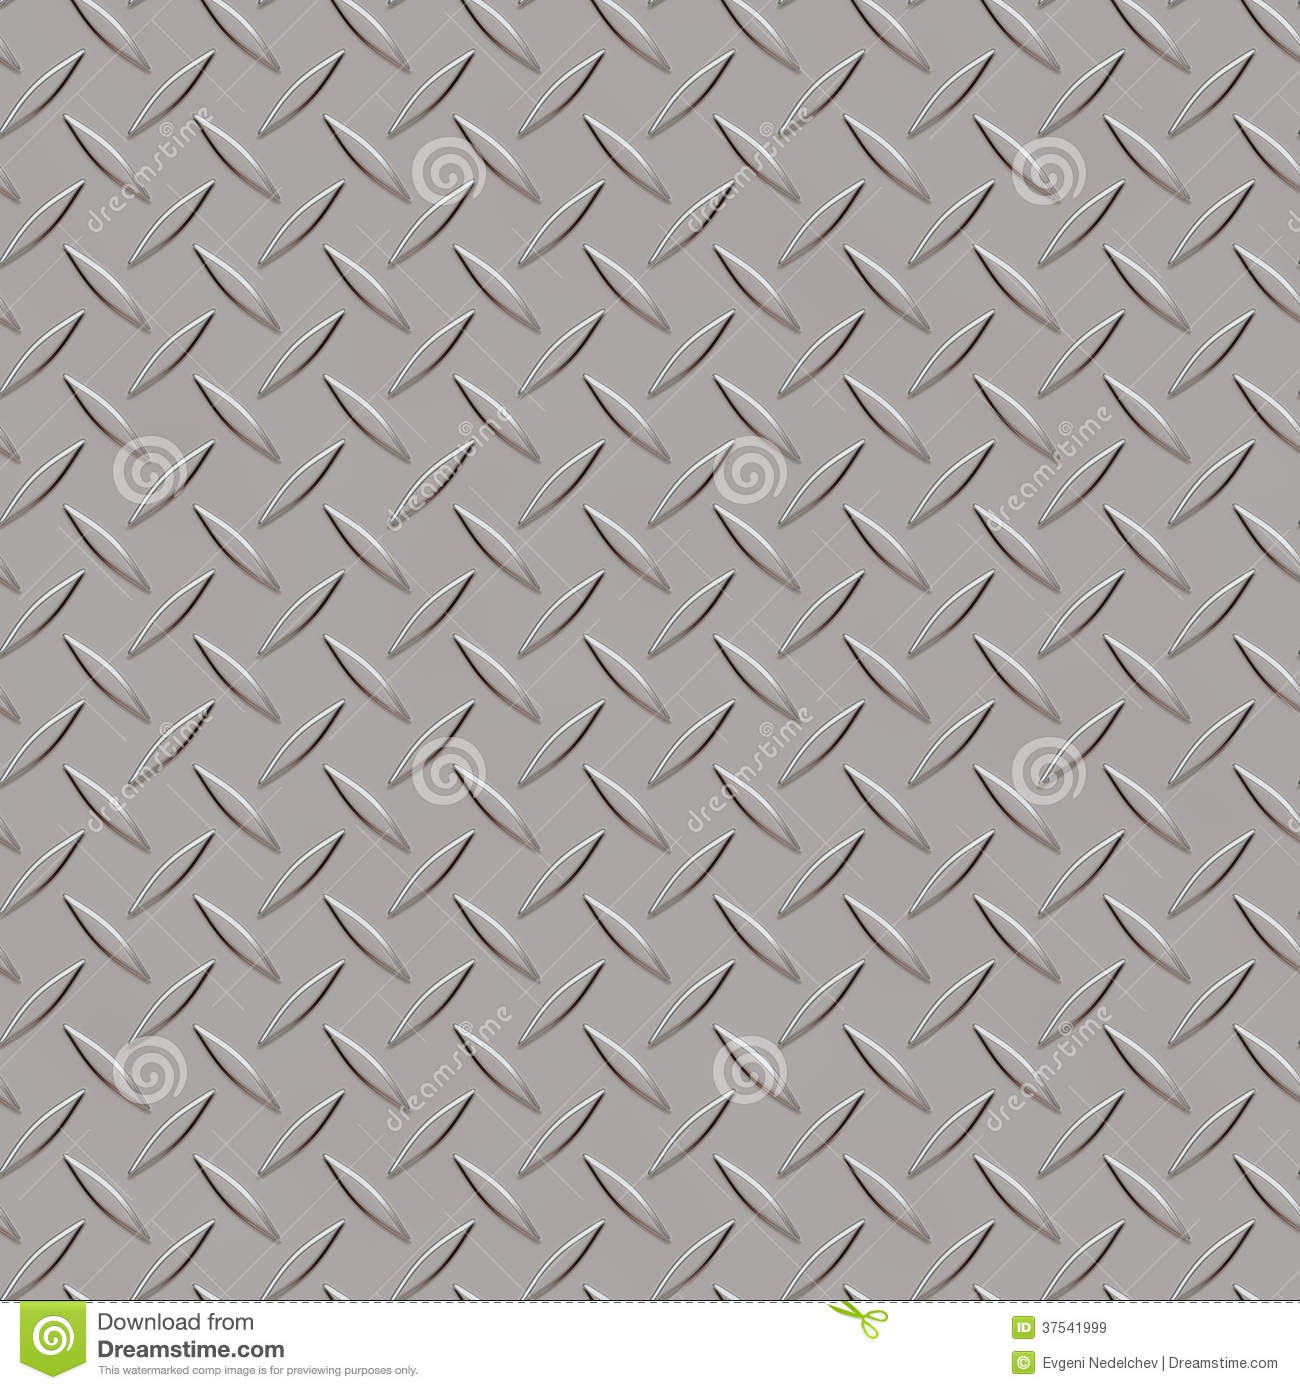 Seamless Metal Texture Rhombus Shapes 3 Royalty Free Stock